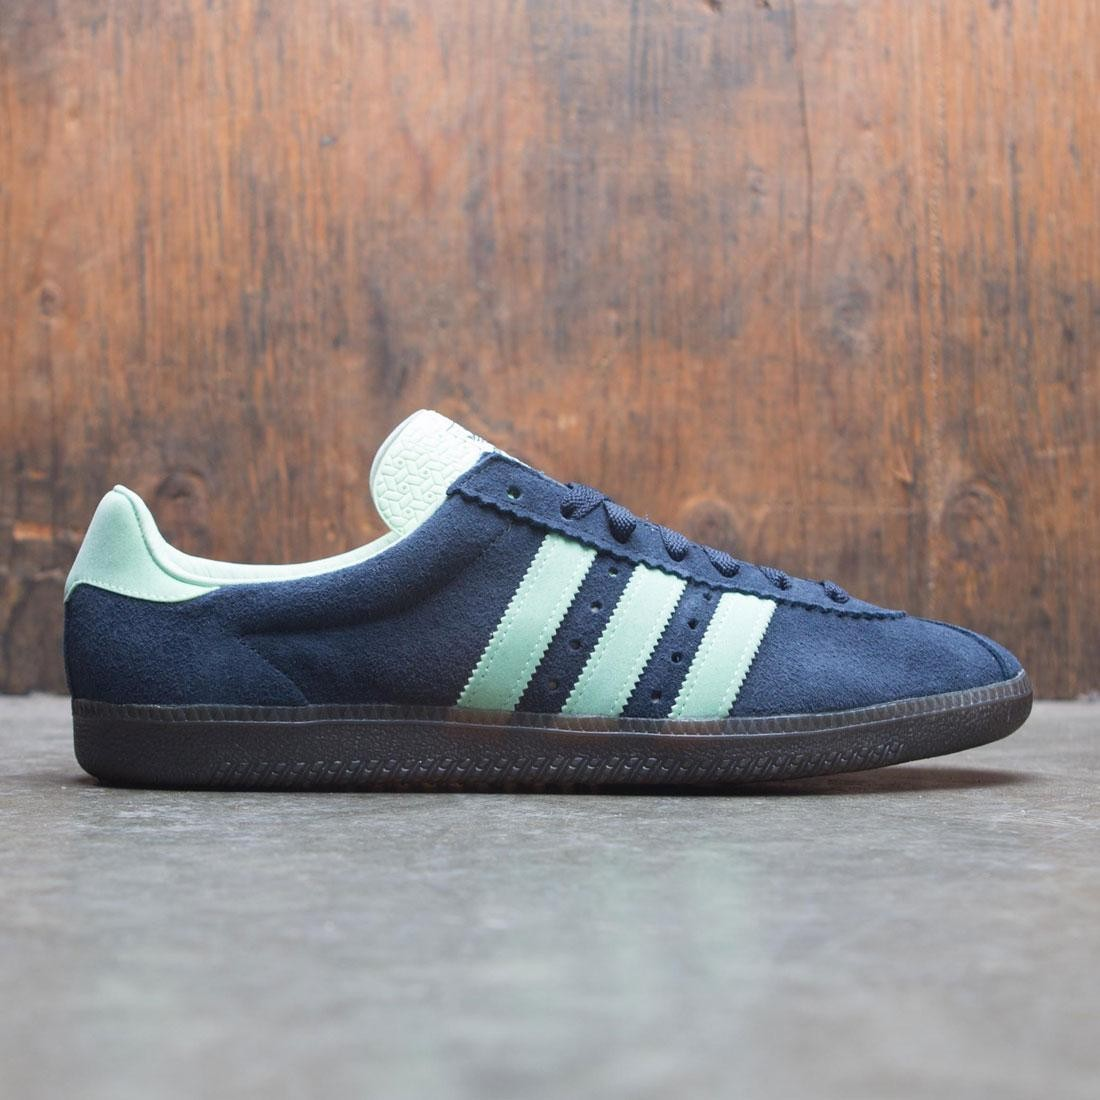 0e89c6ea57d Adidas Men Padiham SPZL navy night navy mist jade